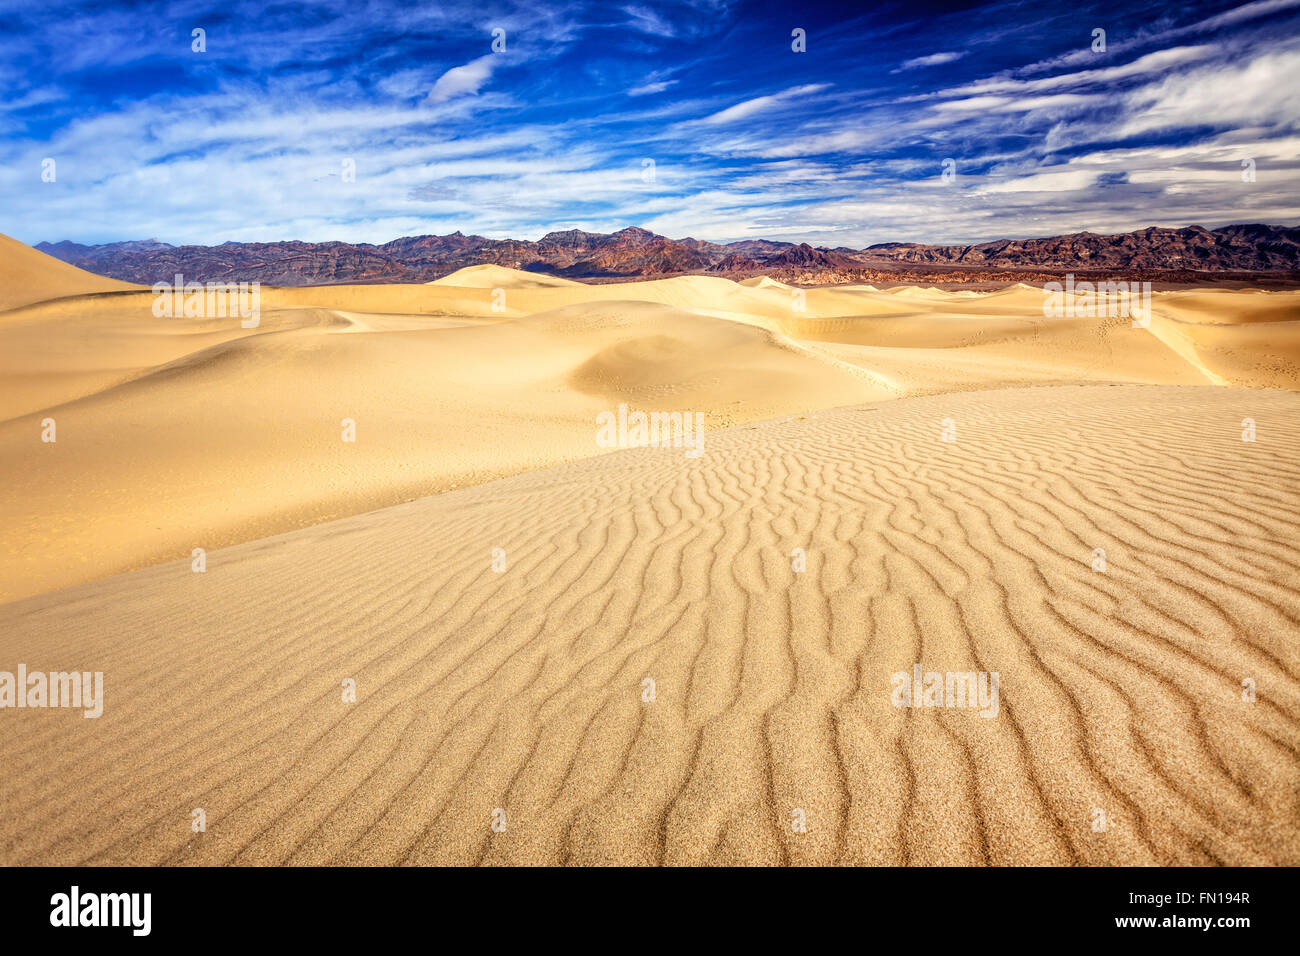 The mesquite flat sand dunes in Death Valley National Park - Stock Image